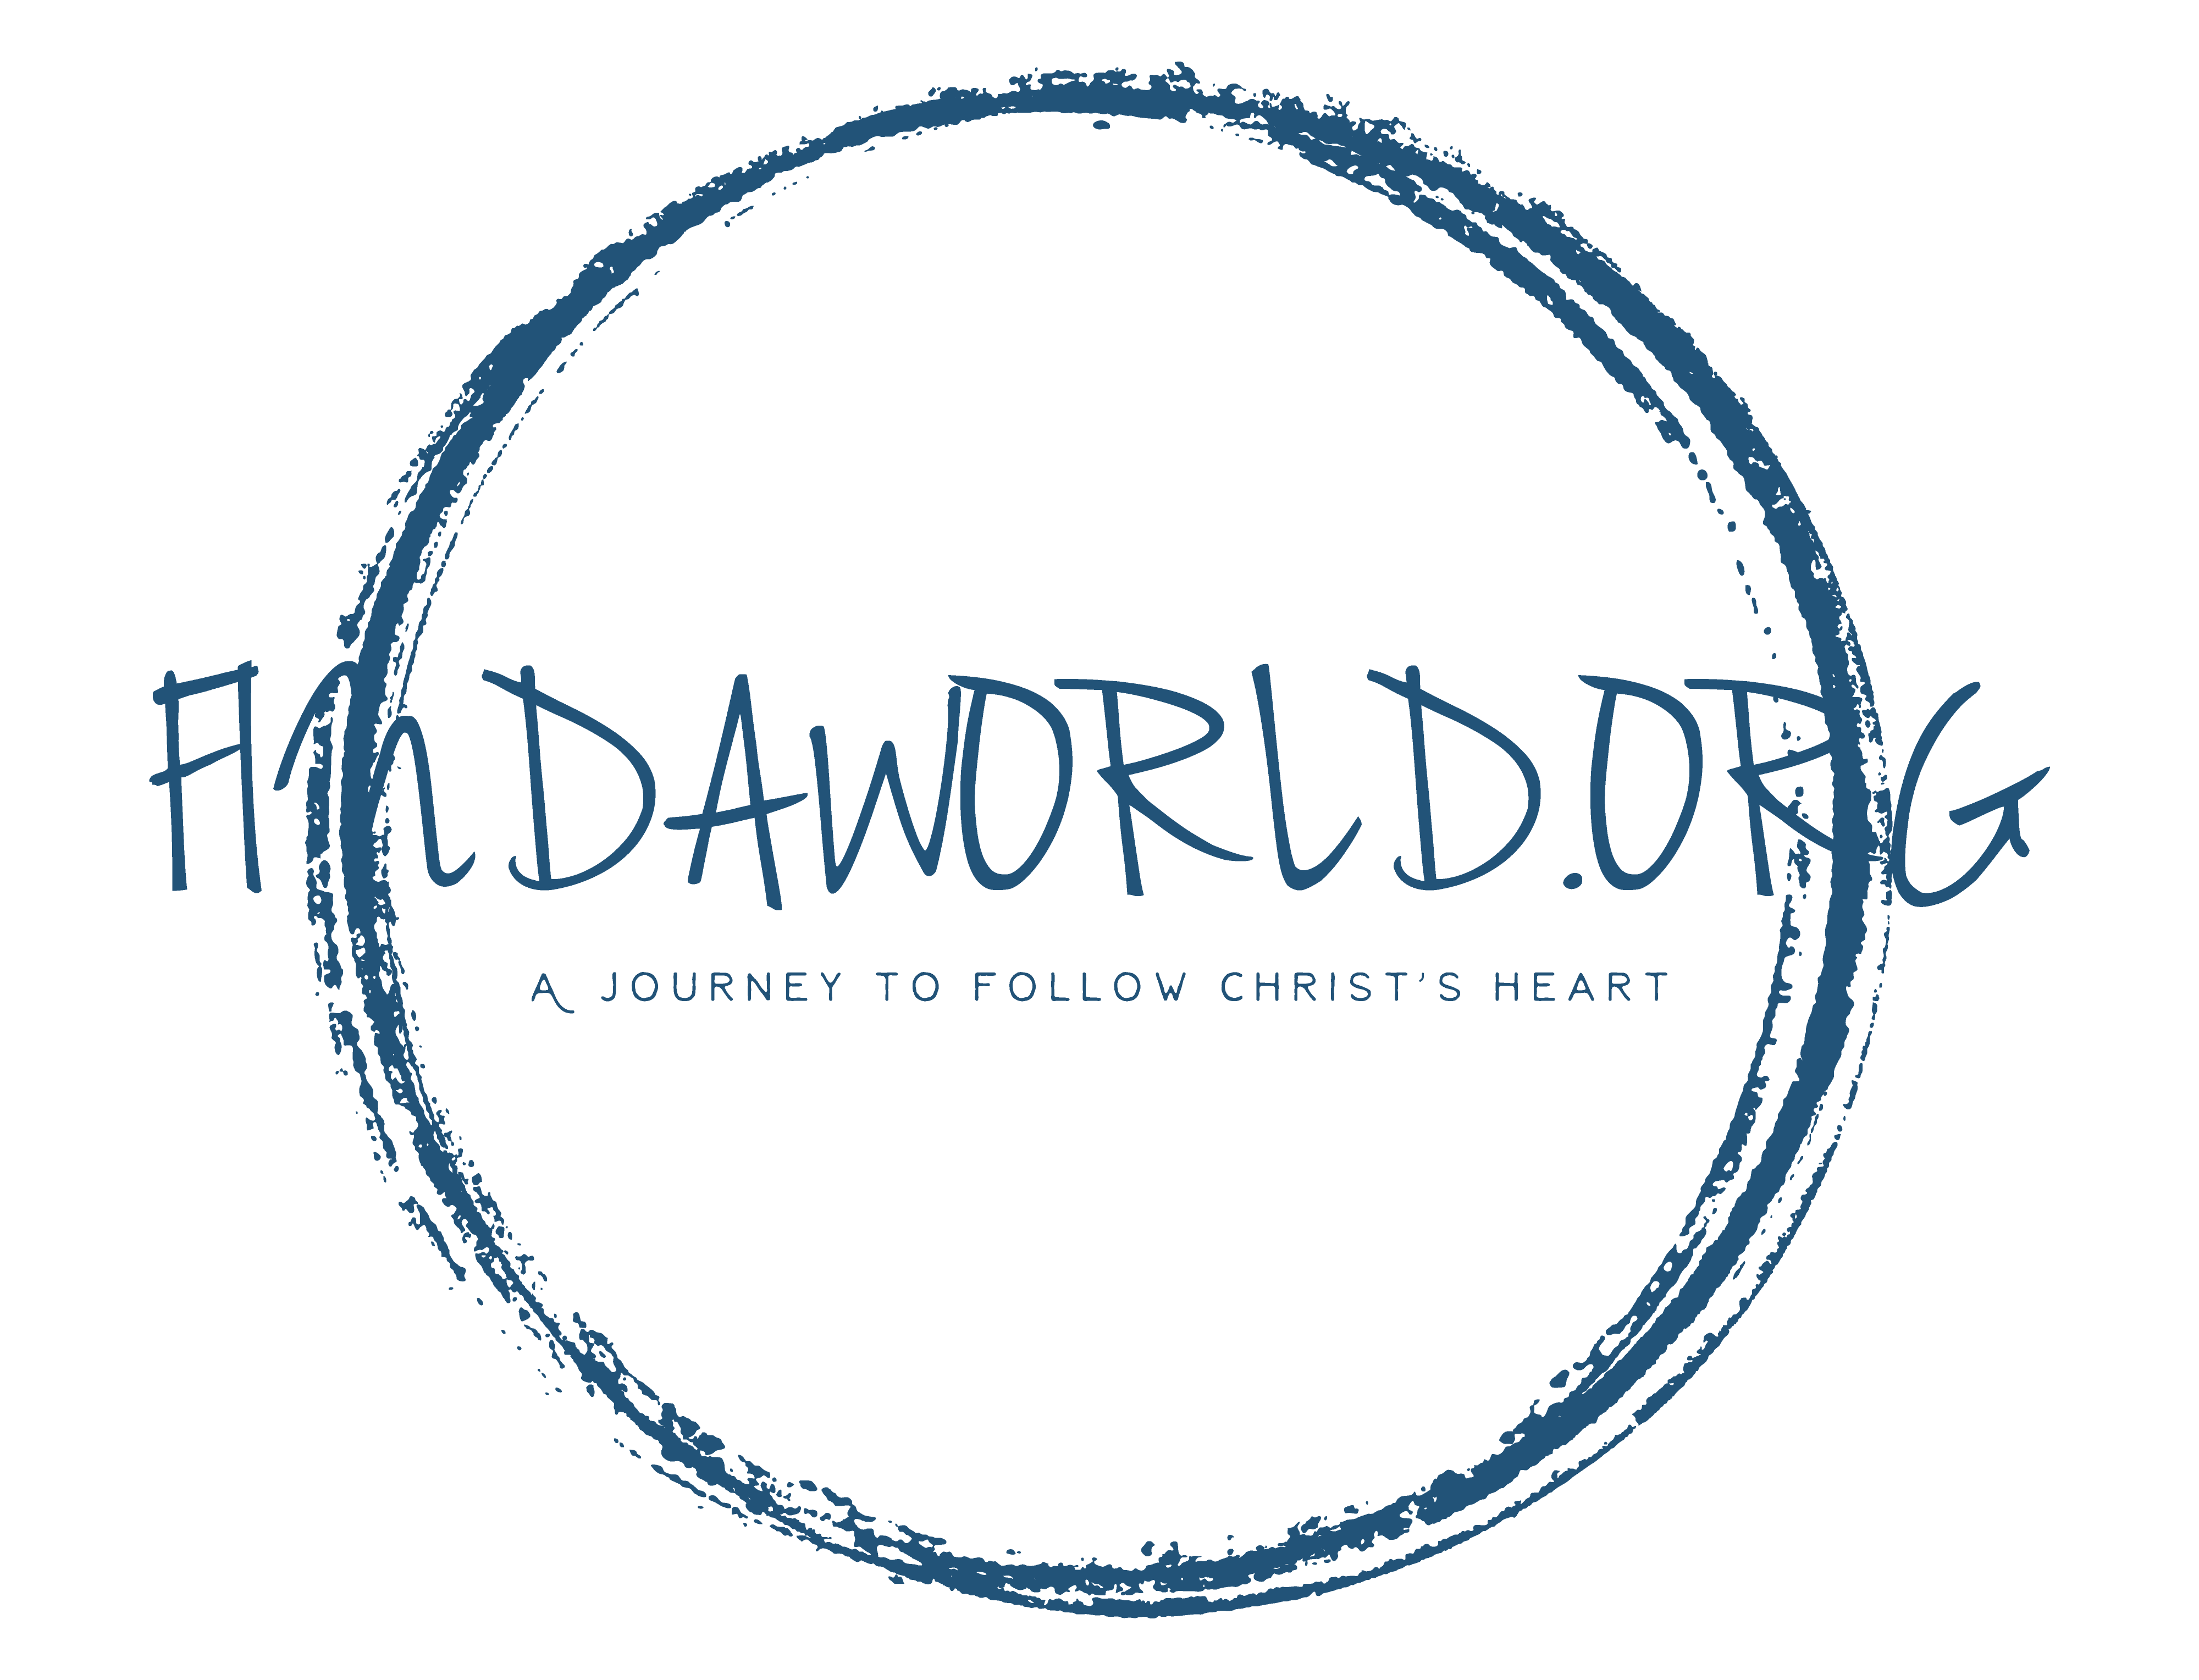 Findaworld.org